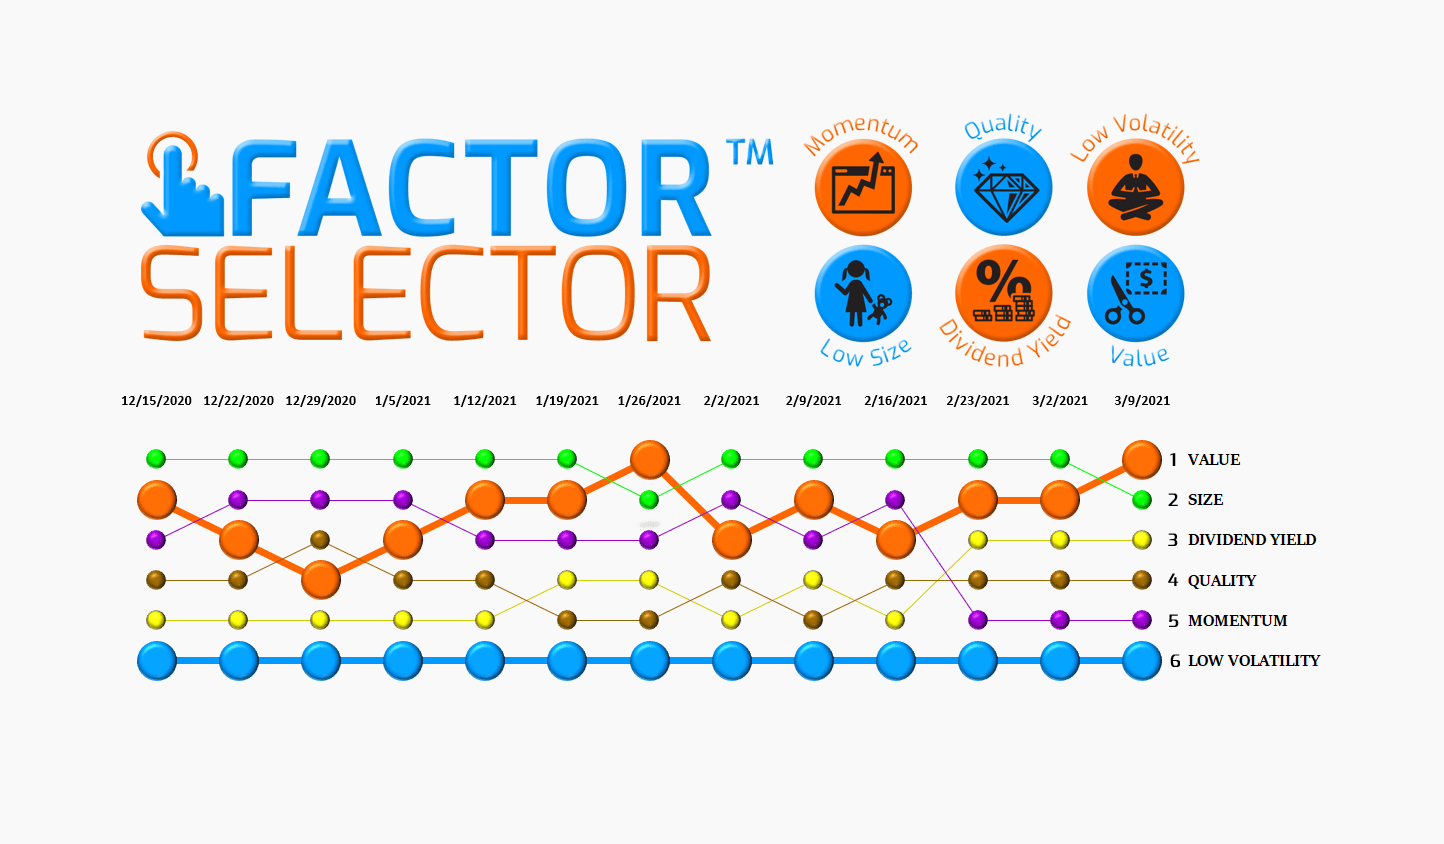 Factor Selector™  – 03/10/21 via @https://www.pinterest.com/market_scholars